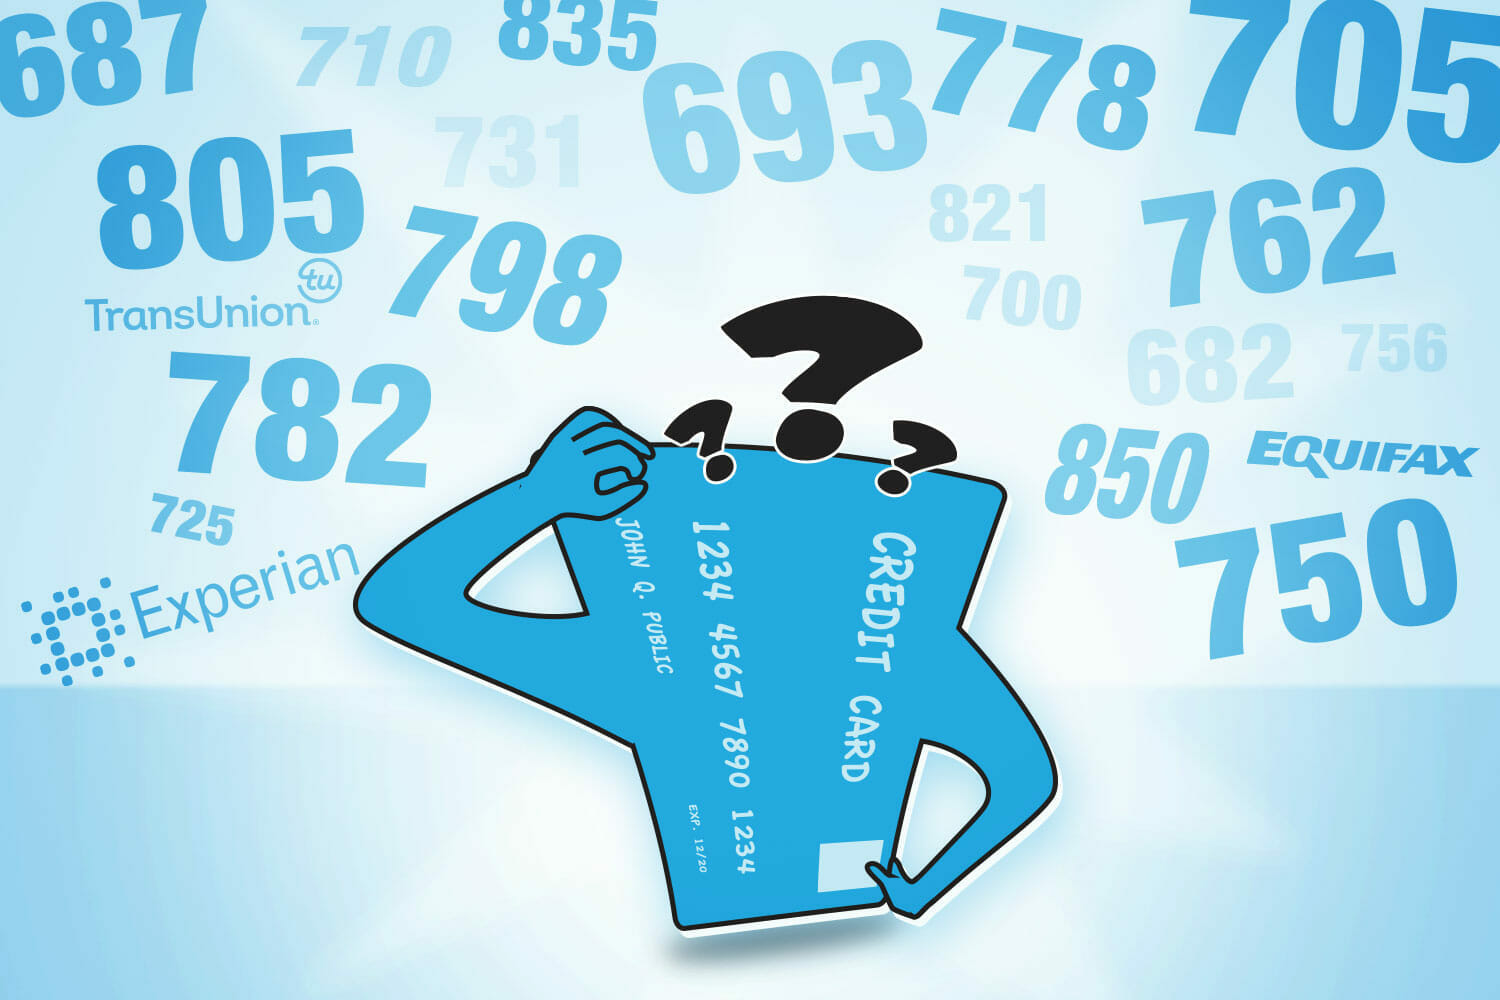 Credit Report Companies >> Why Is My Credit Score Different Depending Where I Look?